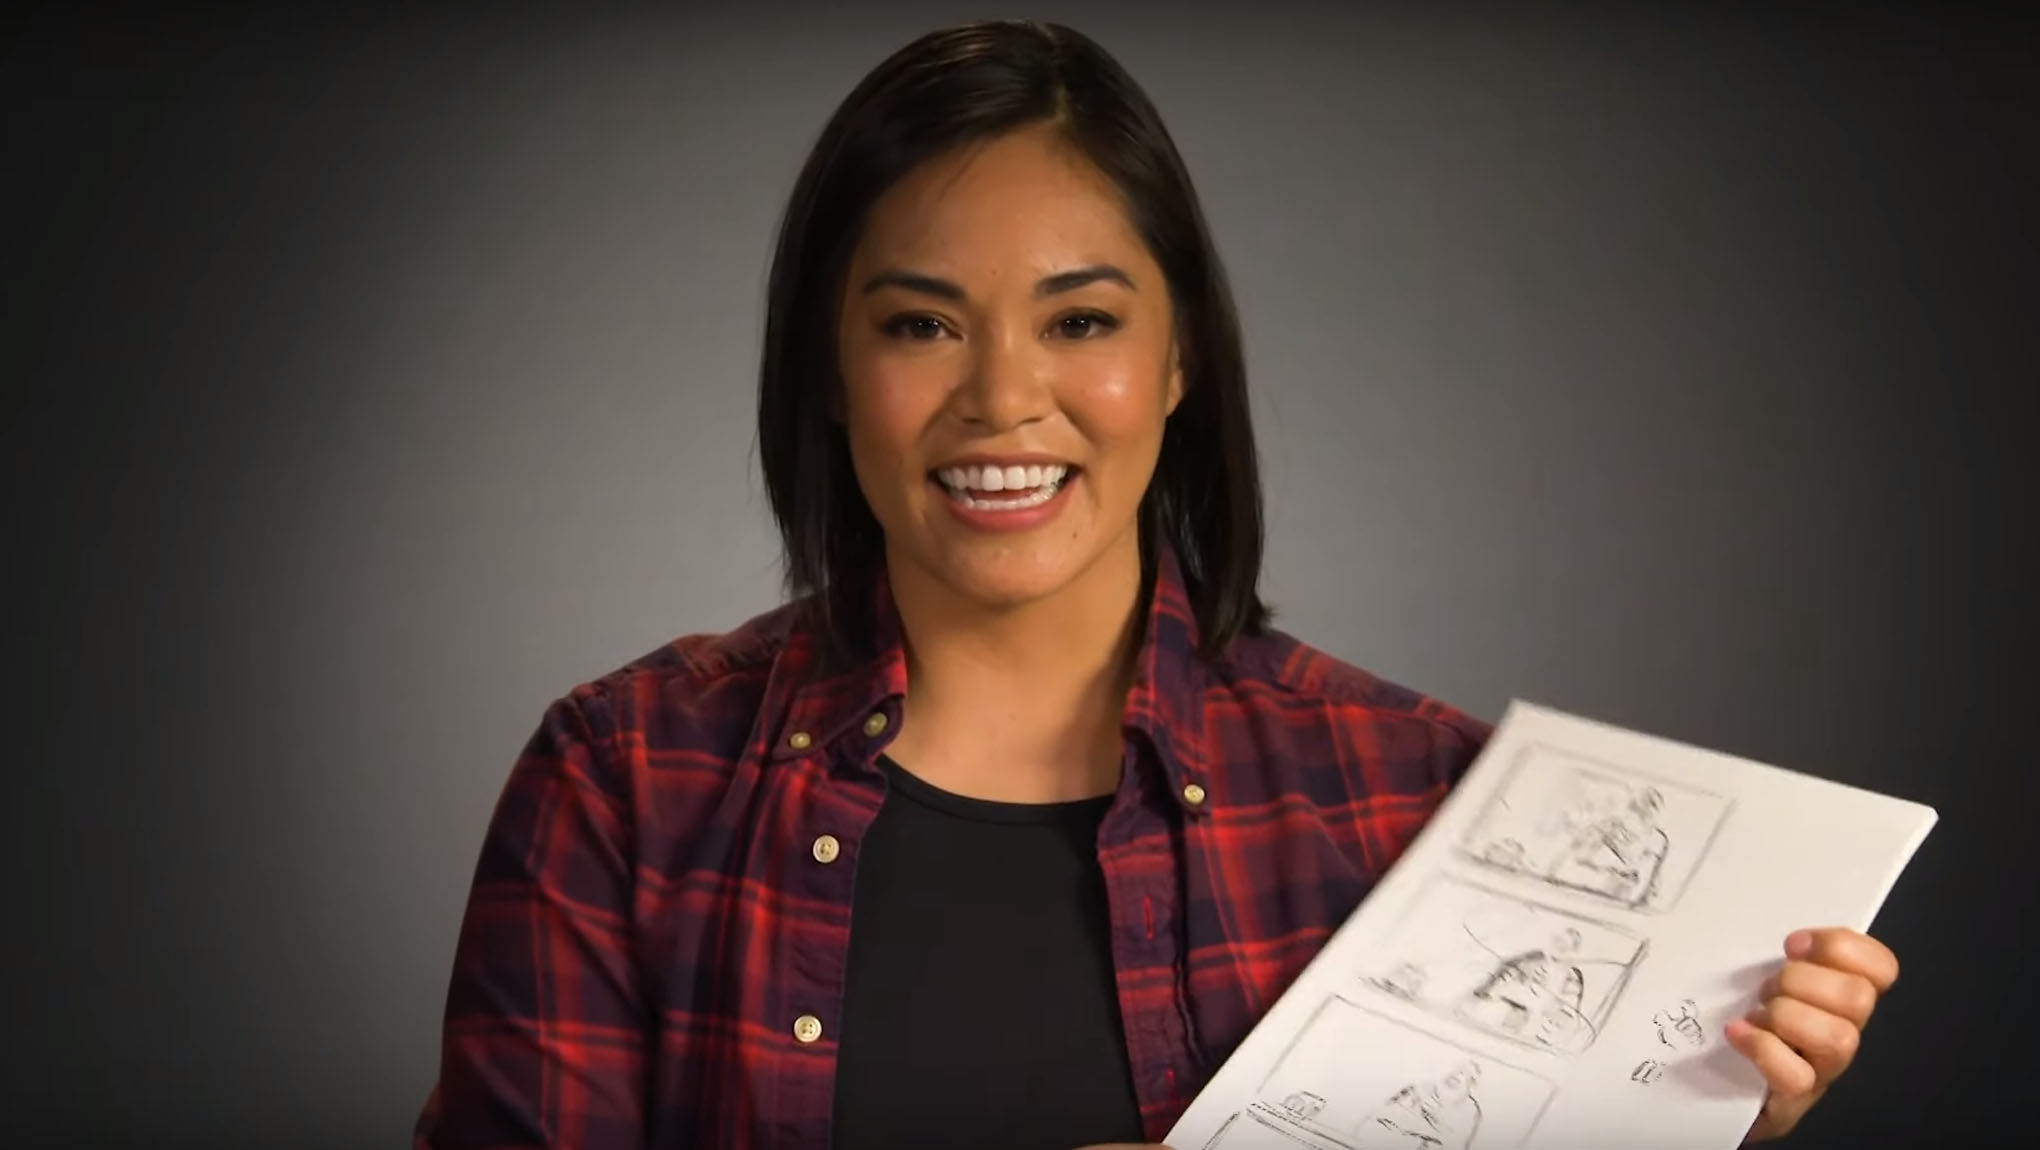 Artists Alley: Disney Head of Story Josie Trinidad sketches Ralph Breaks the Internet storyboards